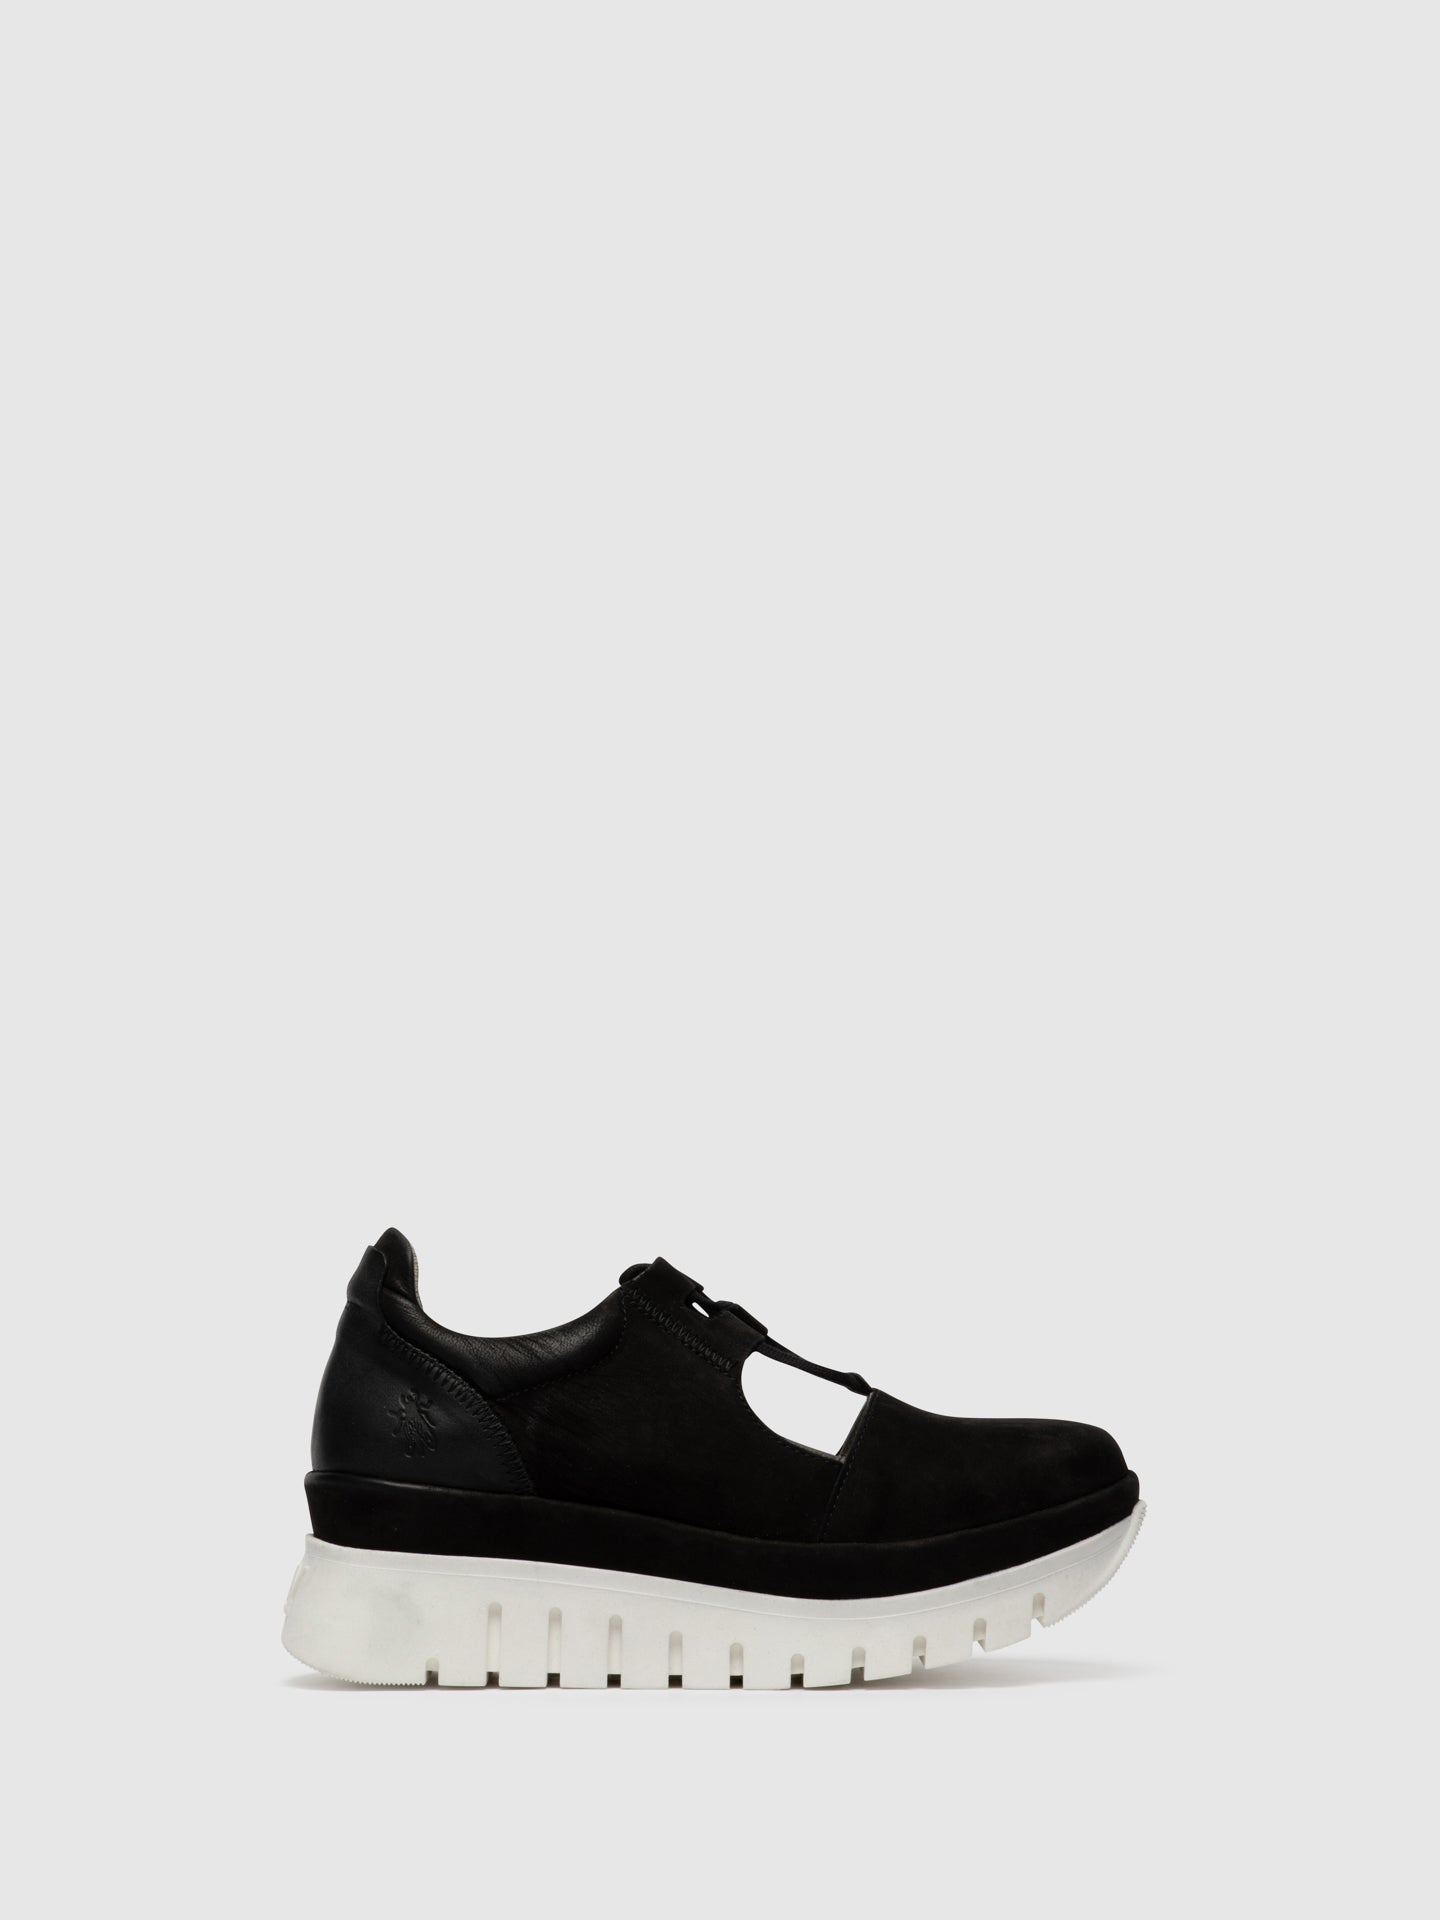 Fly London Black Lace-up Shoes